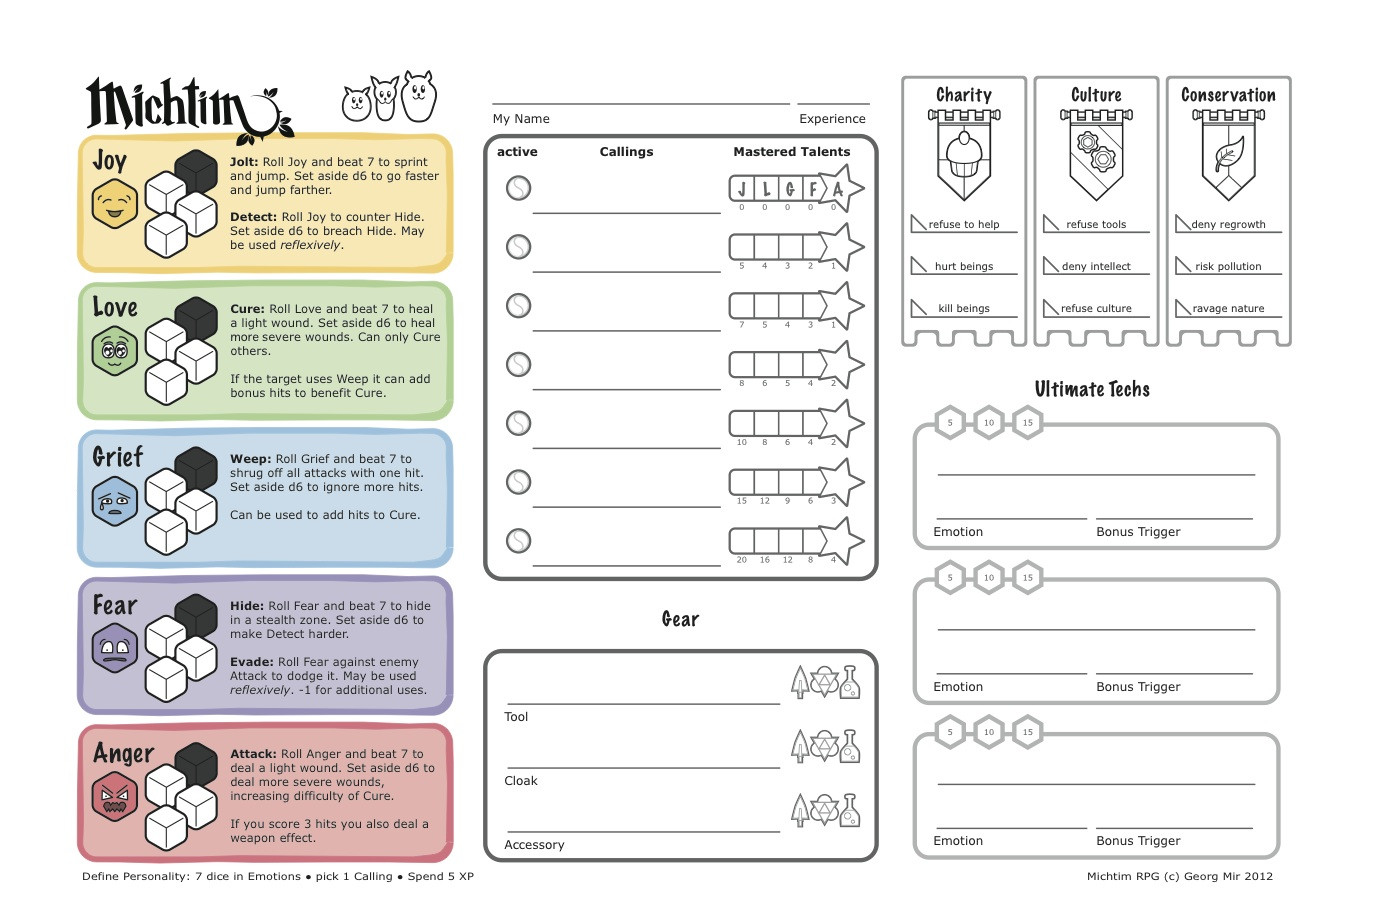 Character sheet for Michtim RPG. It has all the basic action rules on it.